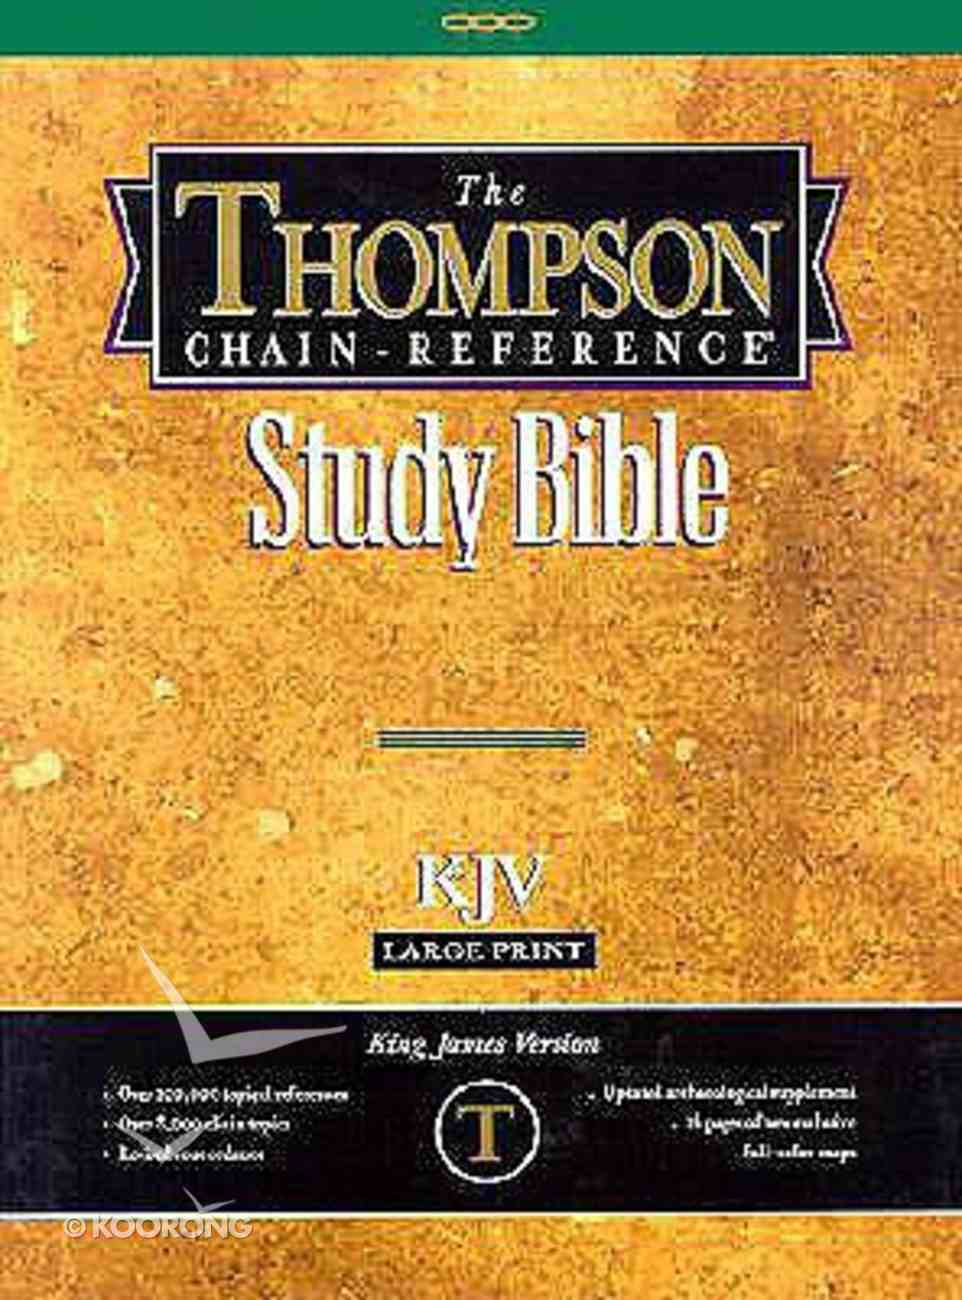 KJV Thompson Chain Reference Large Print Burgundy (Red Letter Edition) Bonded Leather